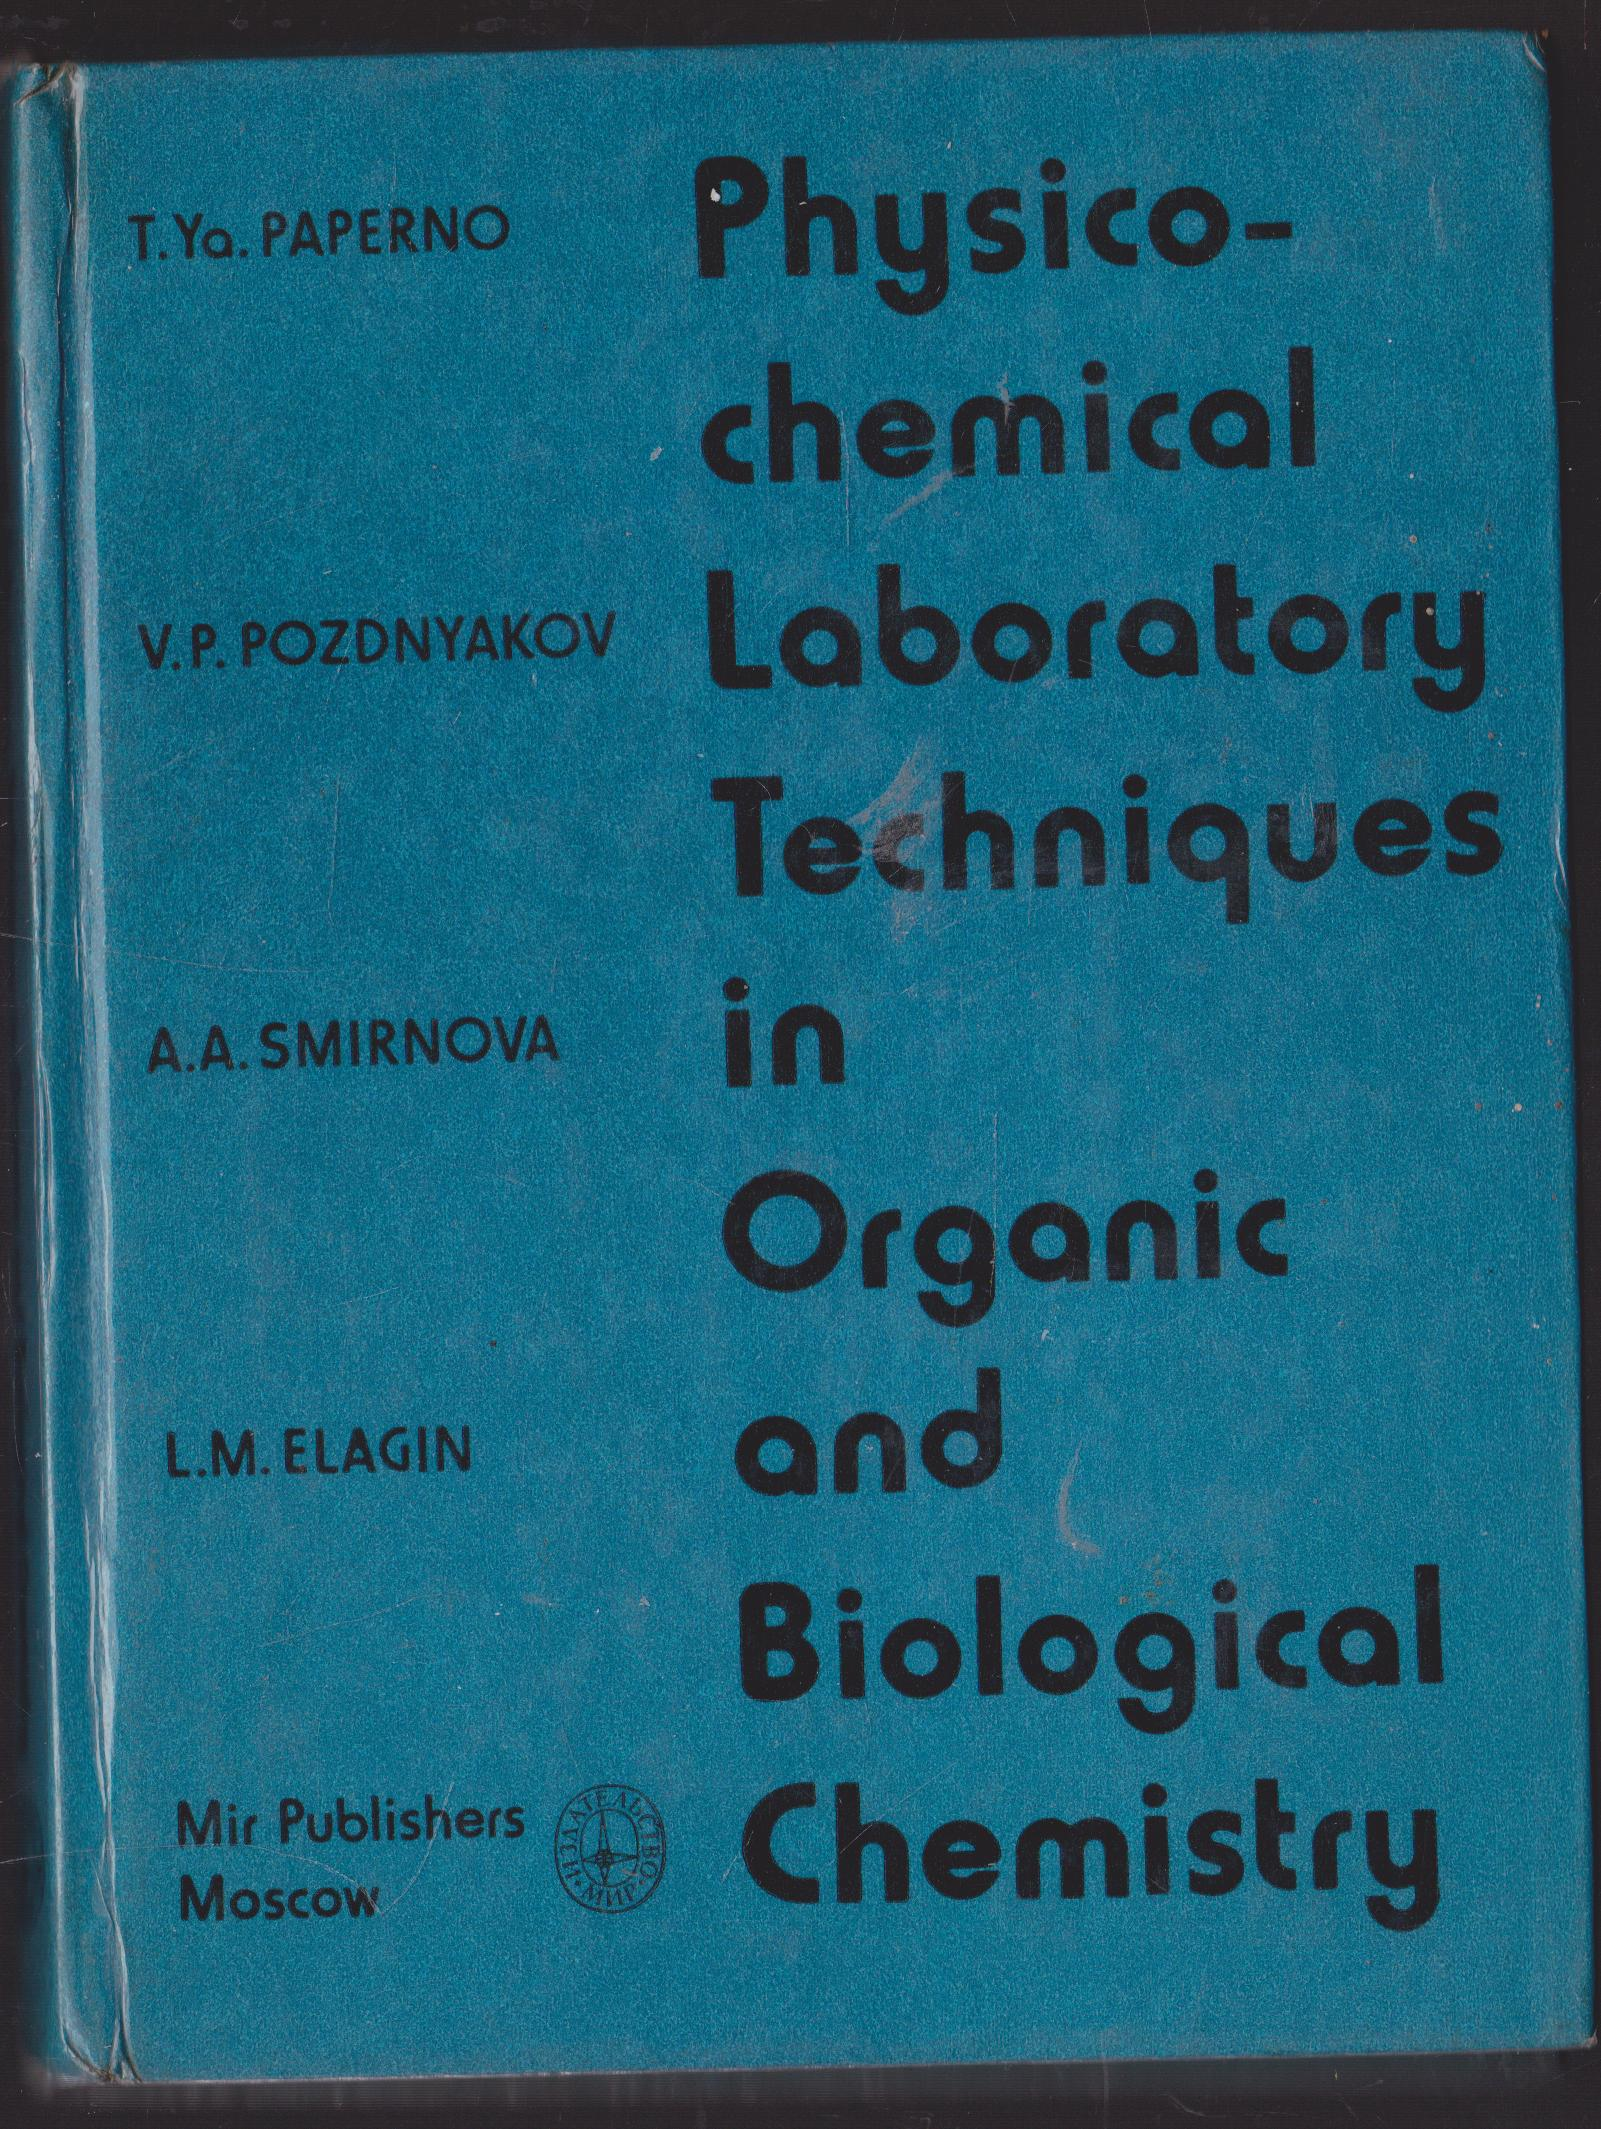 Physico -chemical Laboratory Techniques in Organic and Biological Chemistry